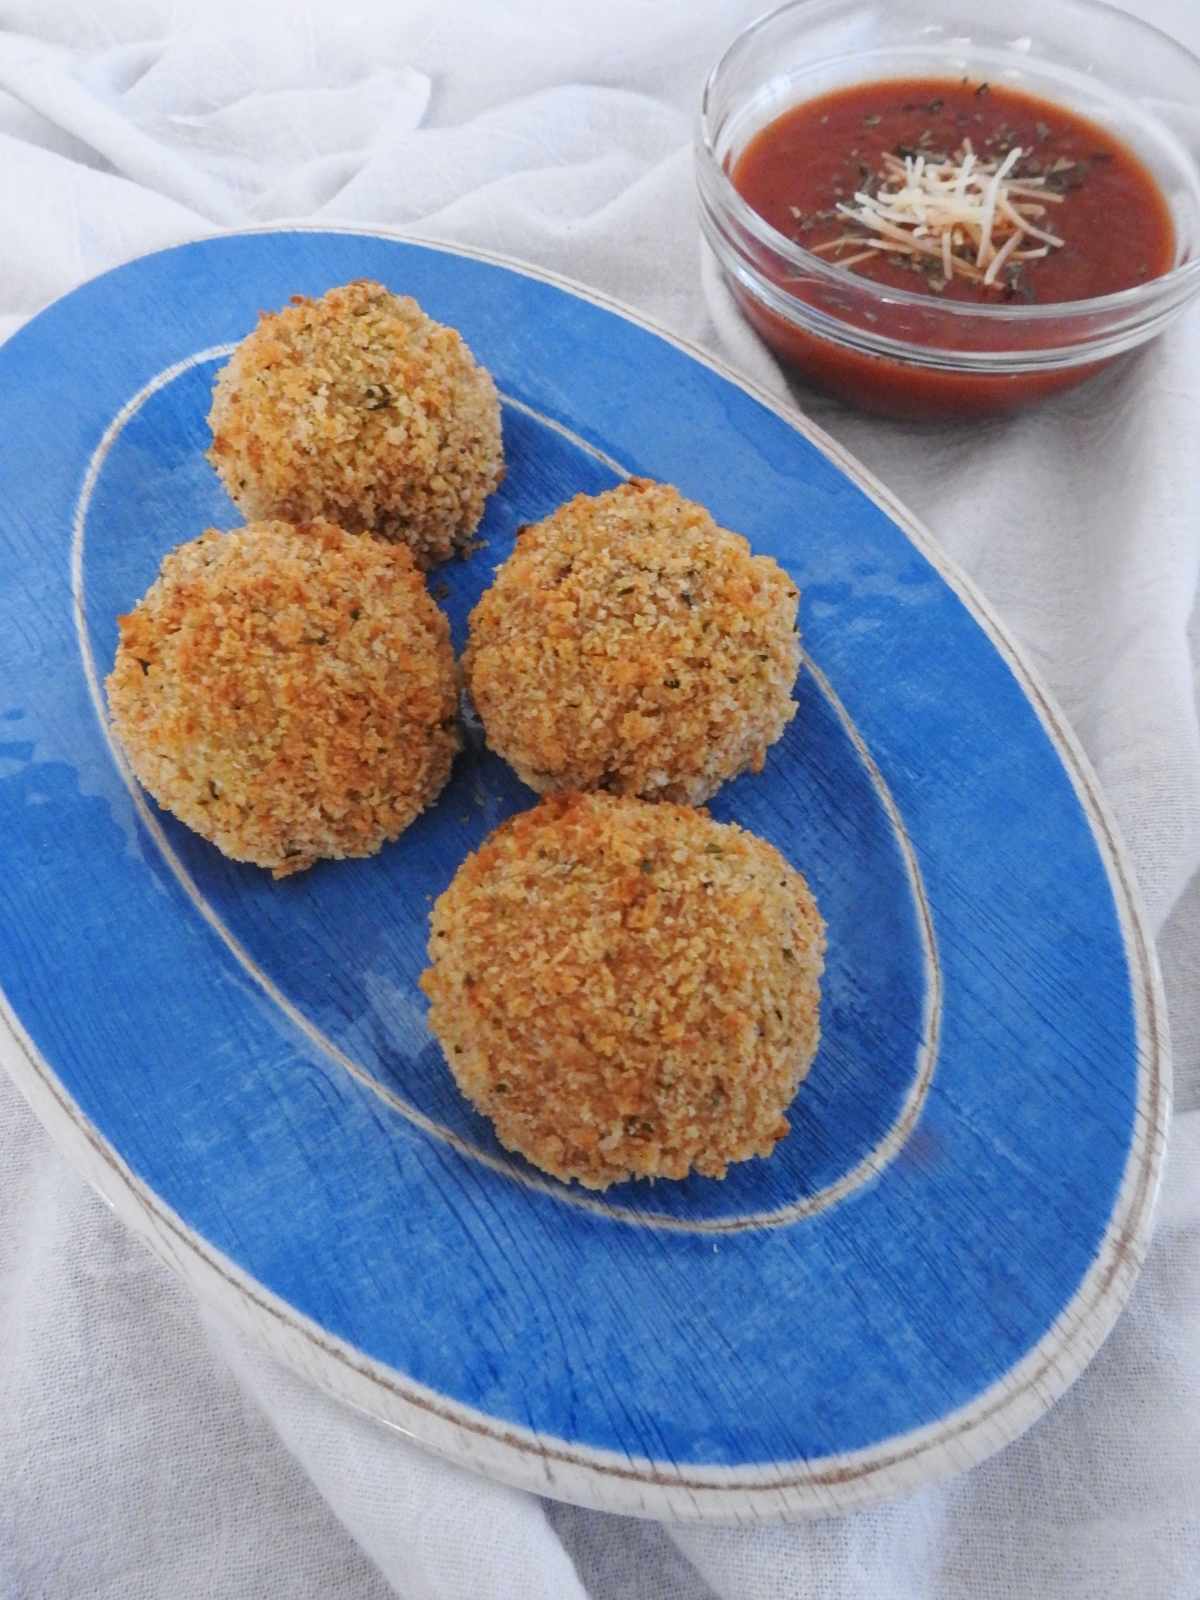 arancini on blue plate with side of sauce